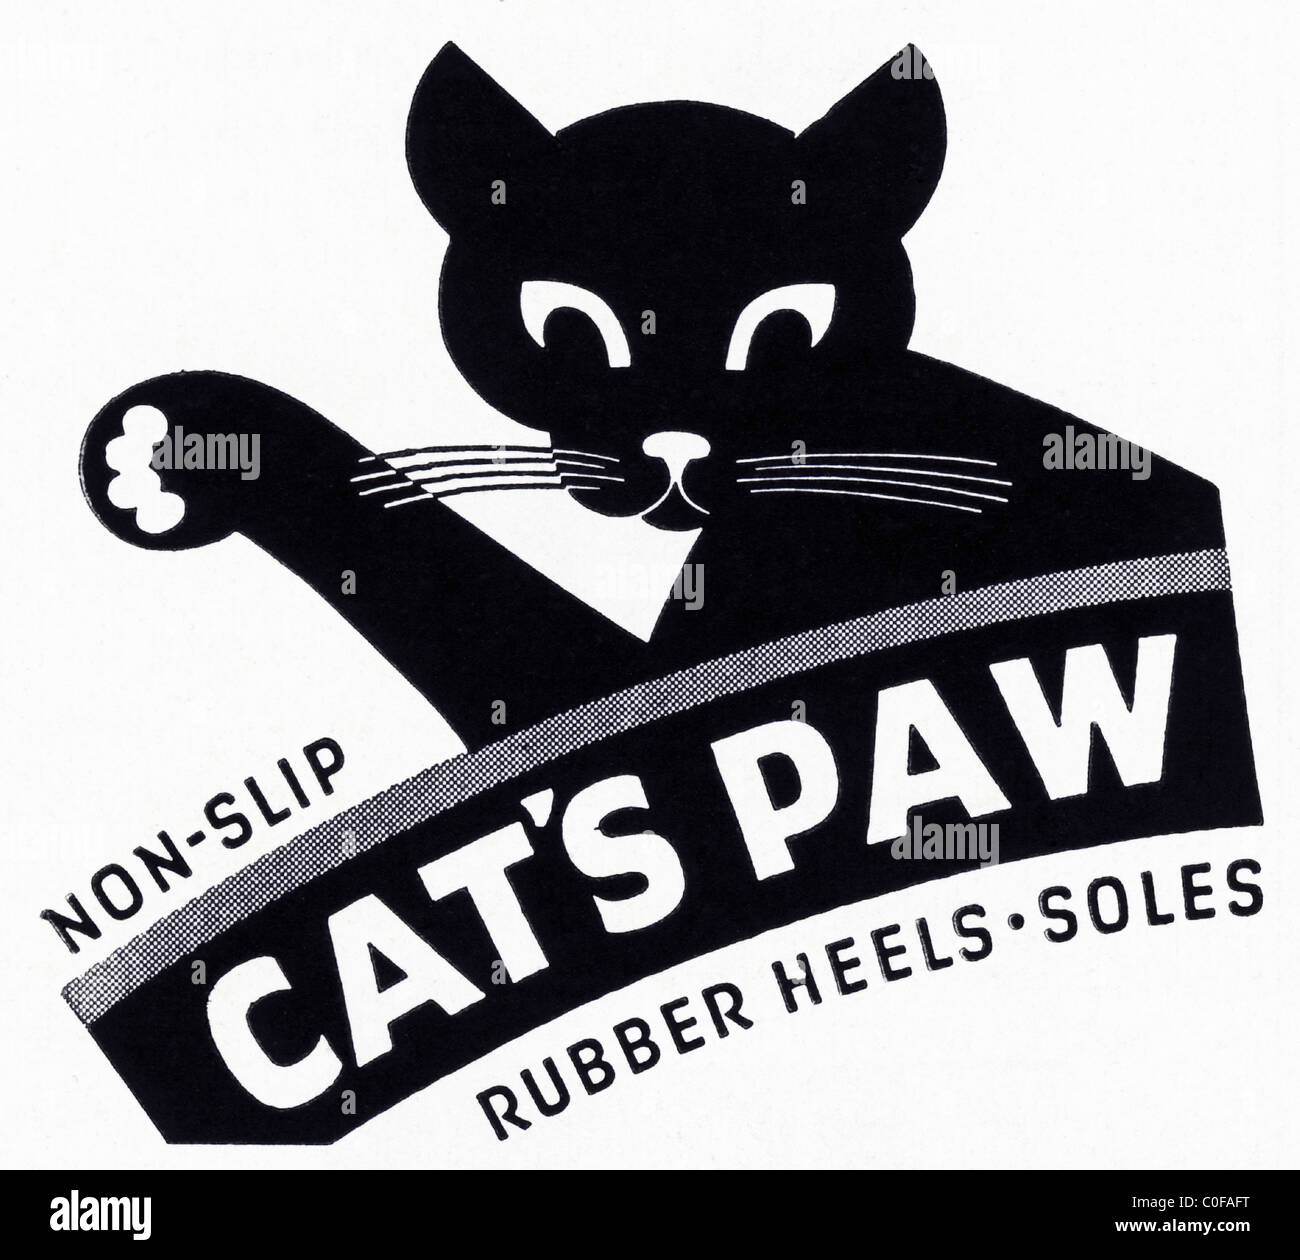 Advertisement in 1950s American magazine for non-slip CAT'S PAW rubber heels and soles - Stock Image